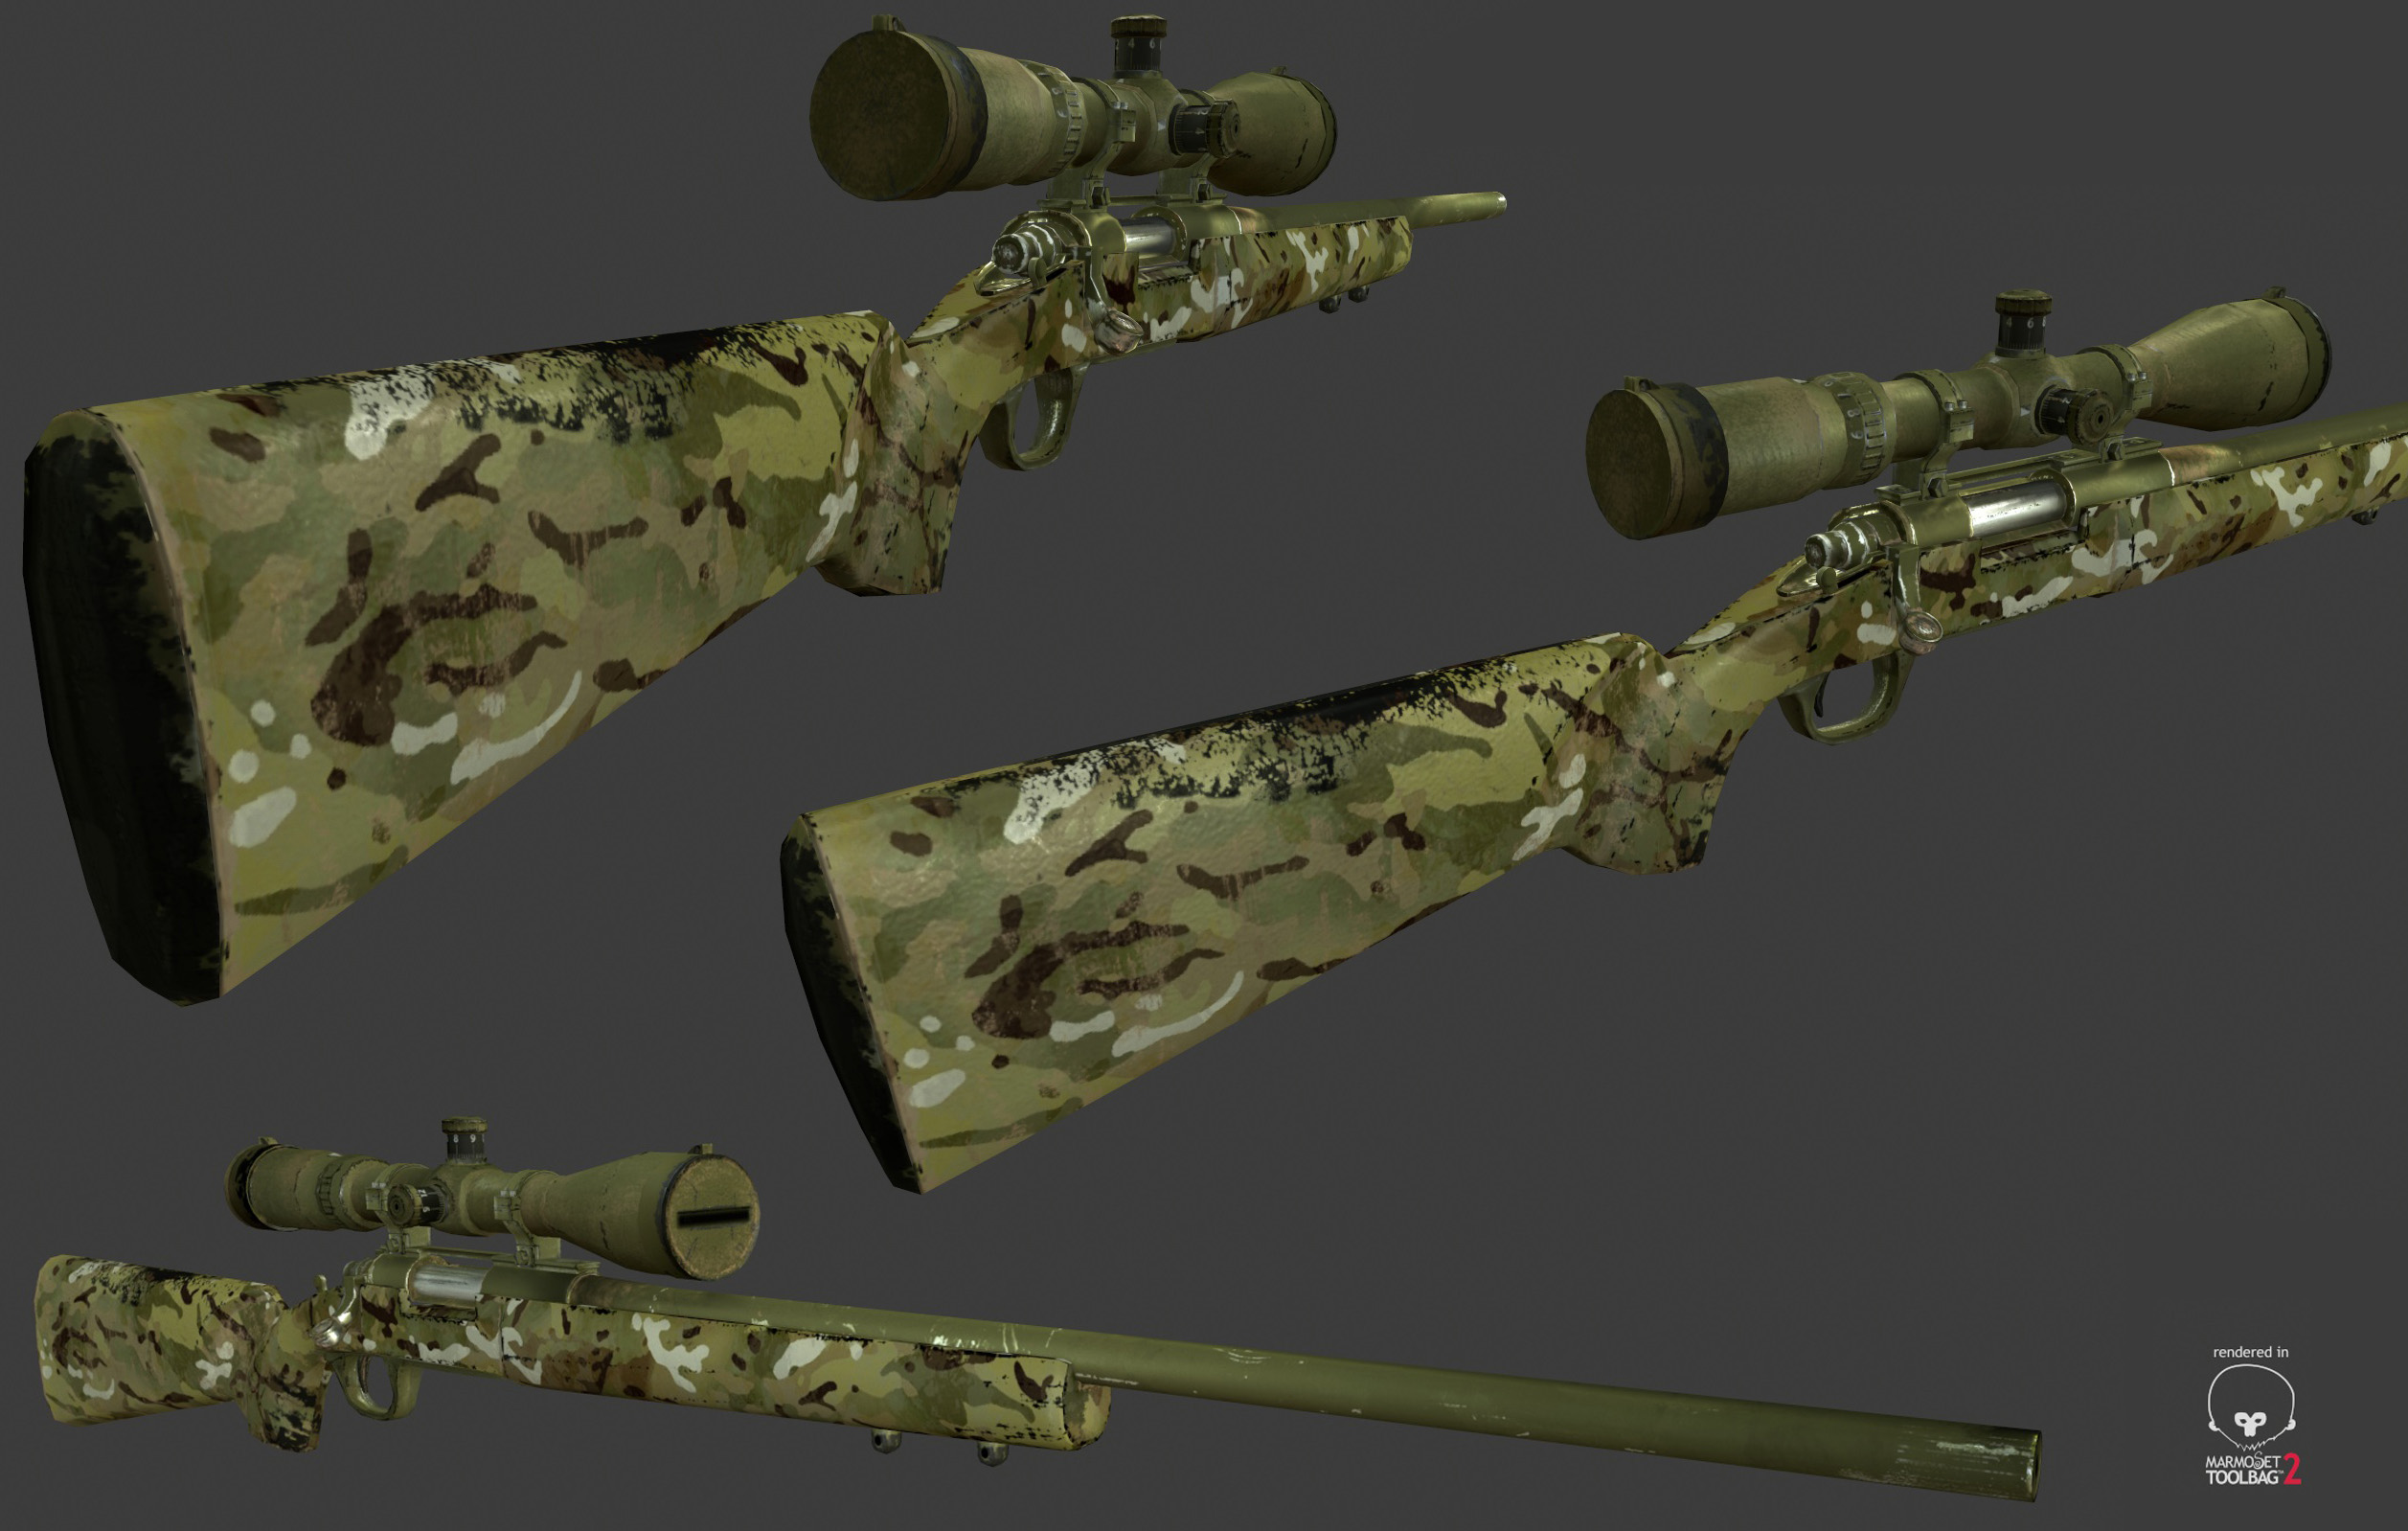 remington_700_by_patronich-d8odam2.jpg